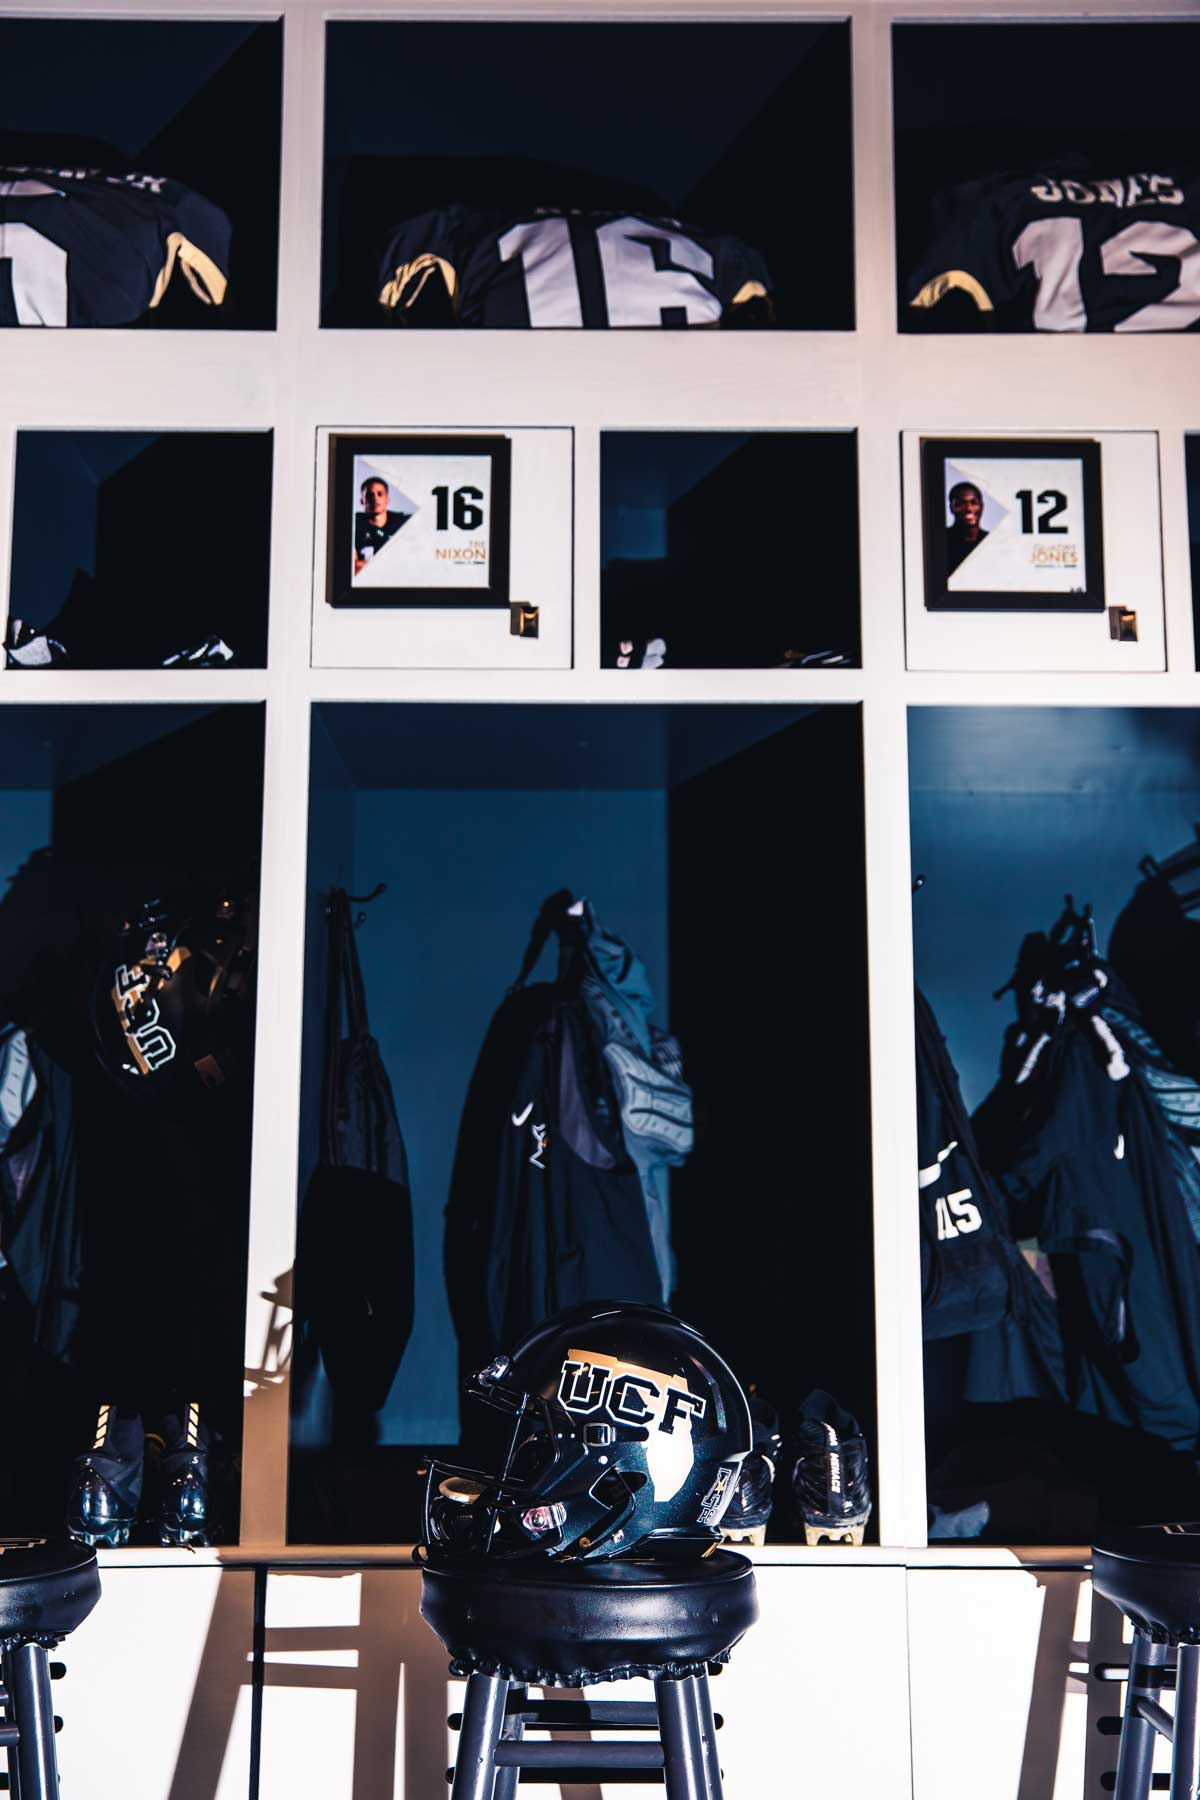 rows of three lockers with a black UCF helmet with the outline of the state of Florida on the side